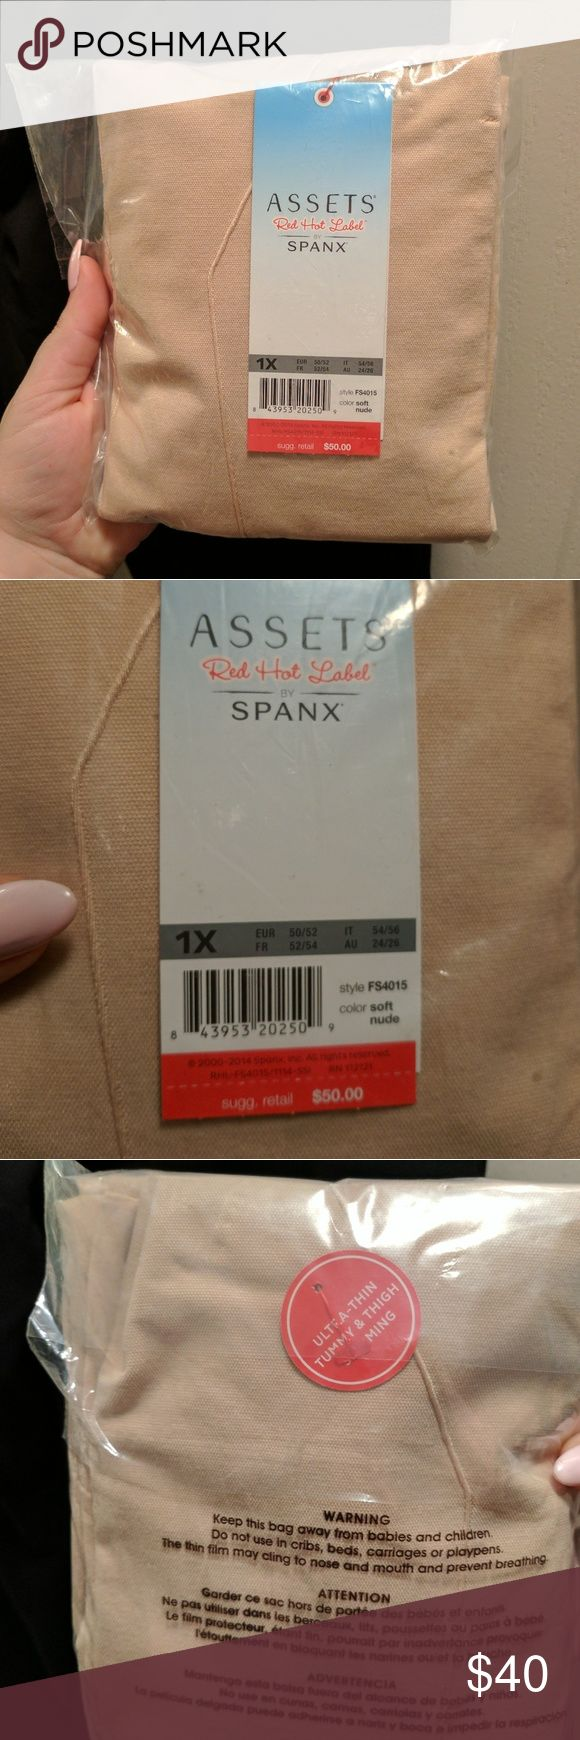 Assets by Spanx size 1X - NEW - high waist shaper Brand new in package! Size 1X  ***I ship in 3 biz days or less*** ASSETS by Sara Blakely Intimates & Sleepwear Shapewear